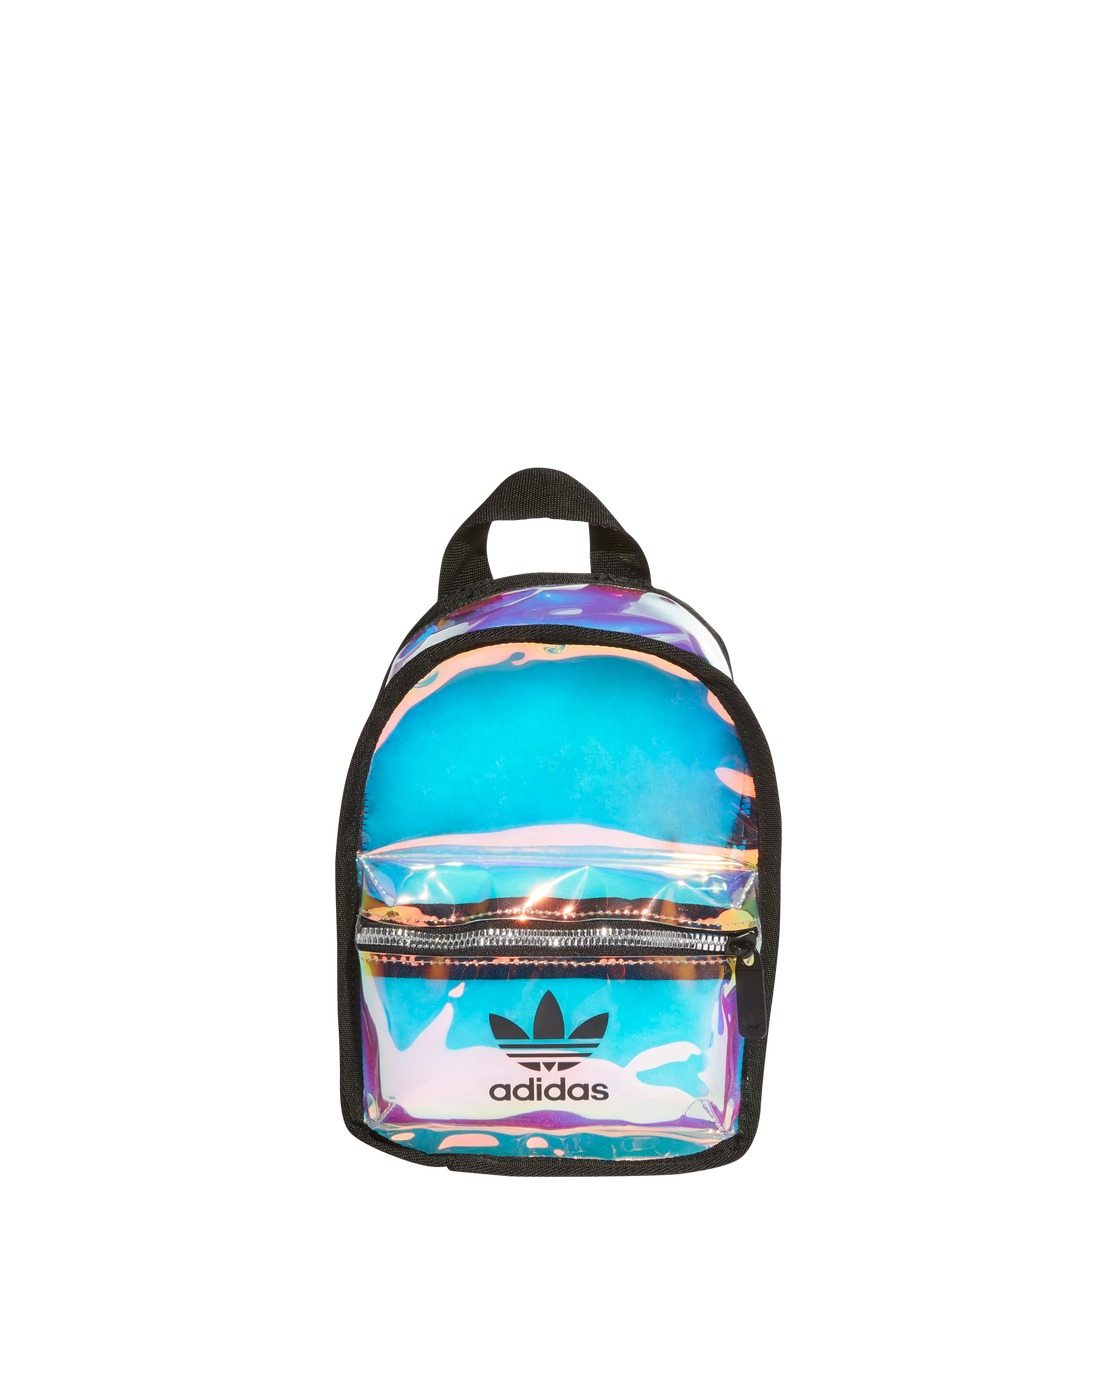 Adidas Originals Mini Backpack Transparent